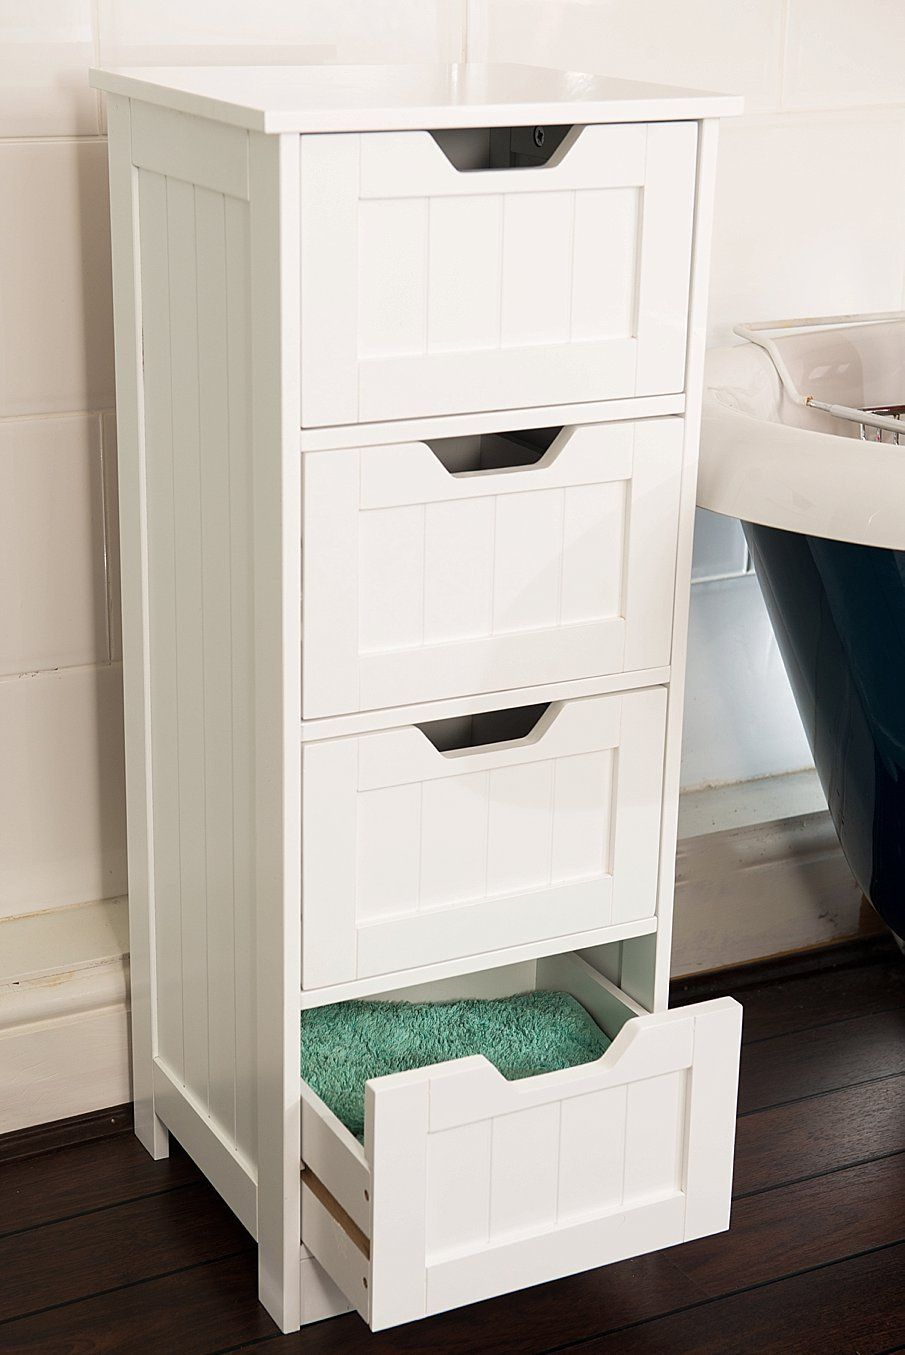 Best White Storage Cabinet 4 Large Drawers Bathroom Or 400 x 300